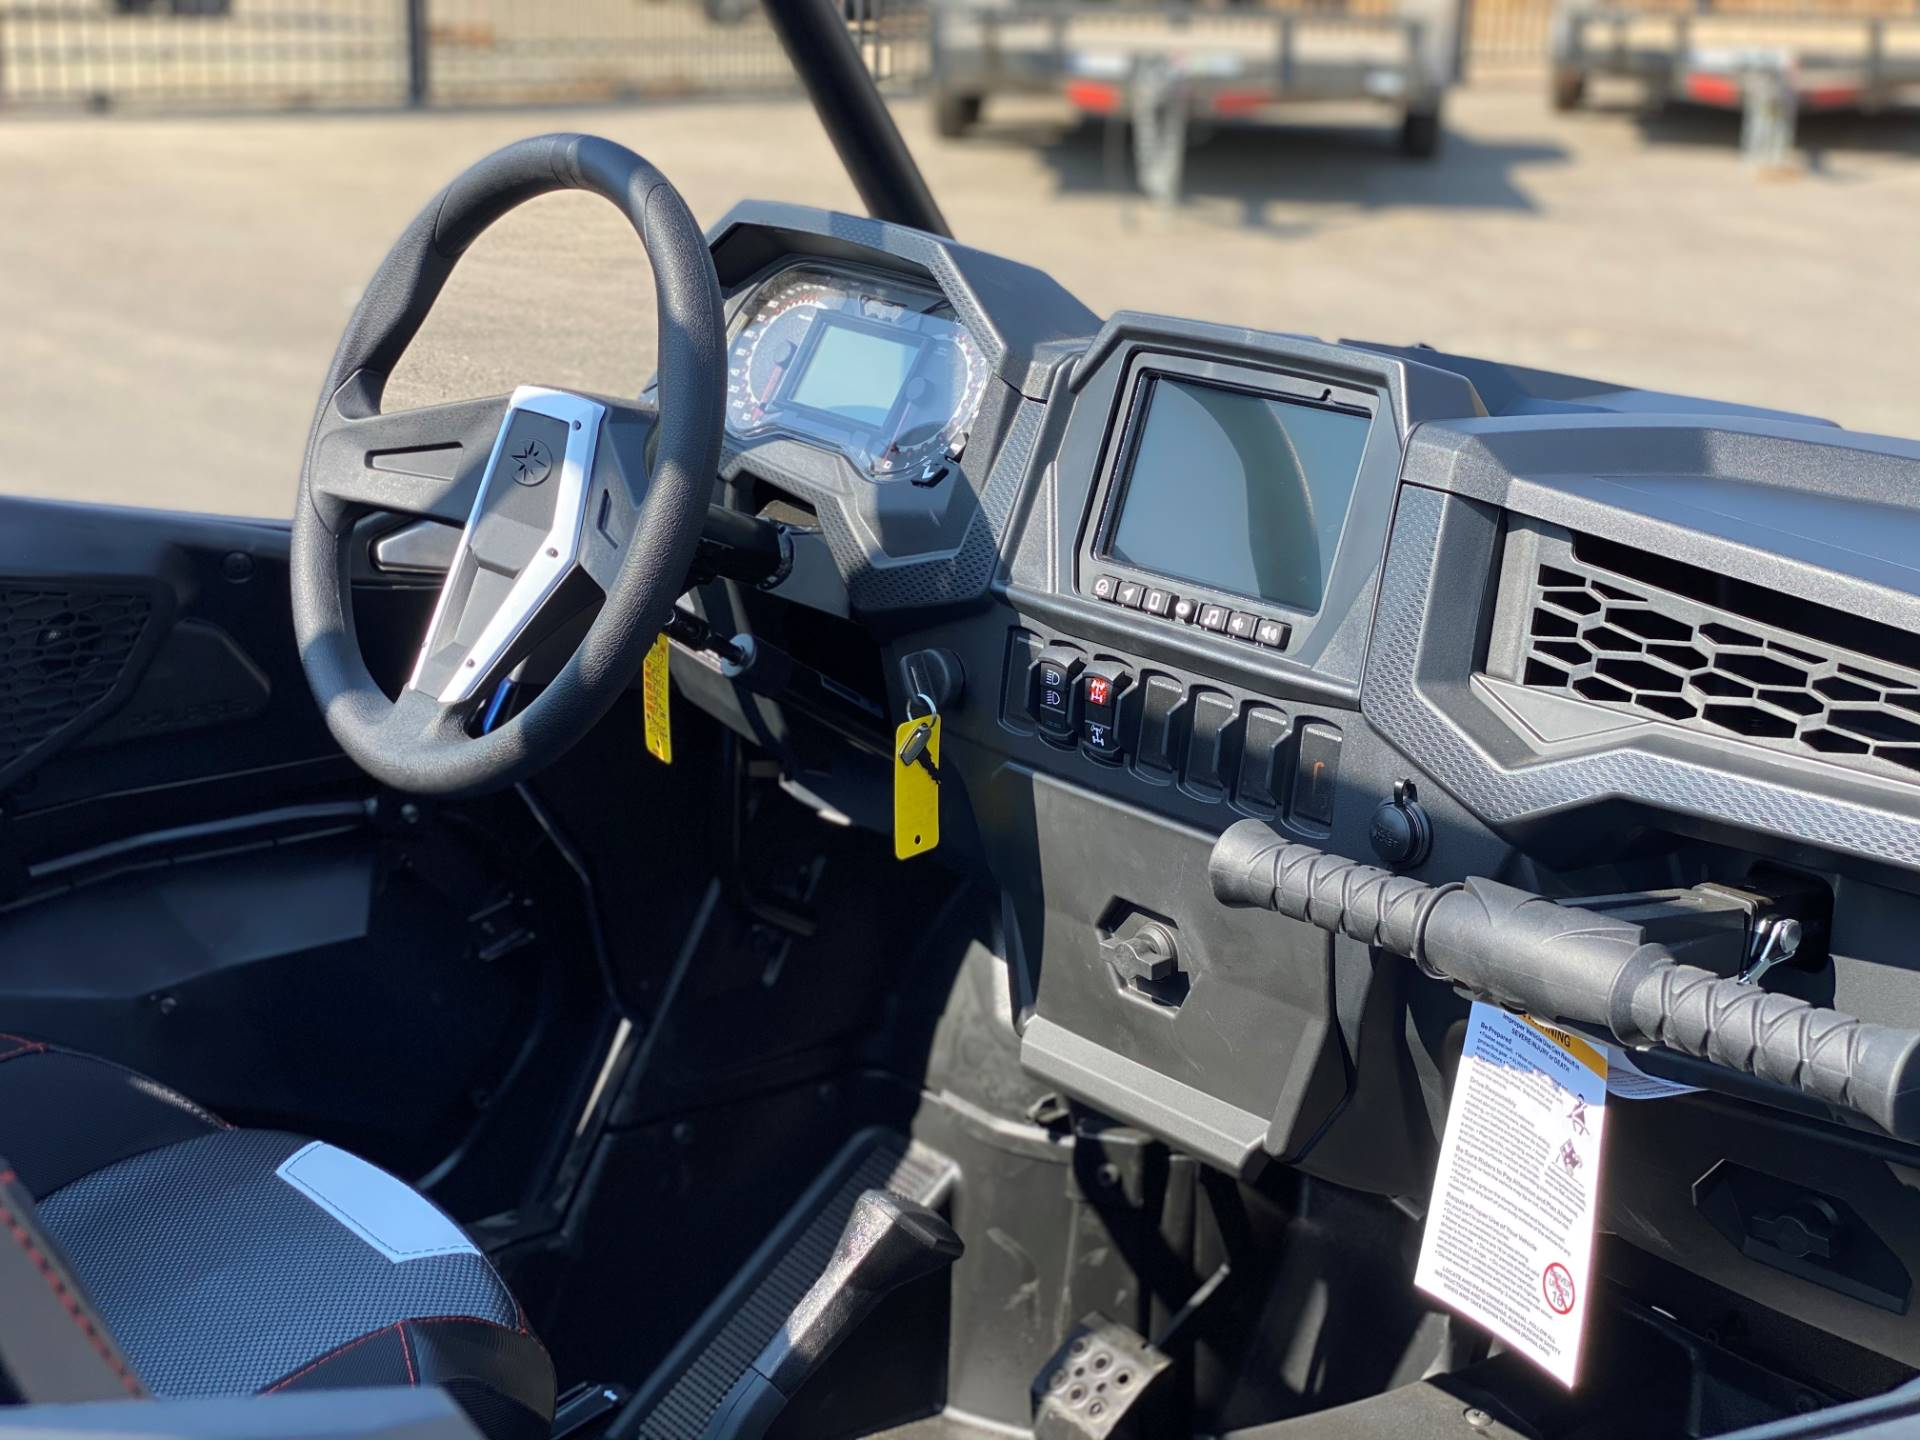 2021 Polaris RZR XP 1000 Premium in Merced, California - Photo 13